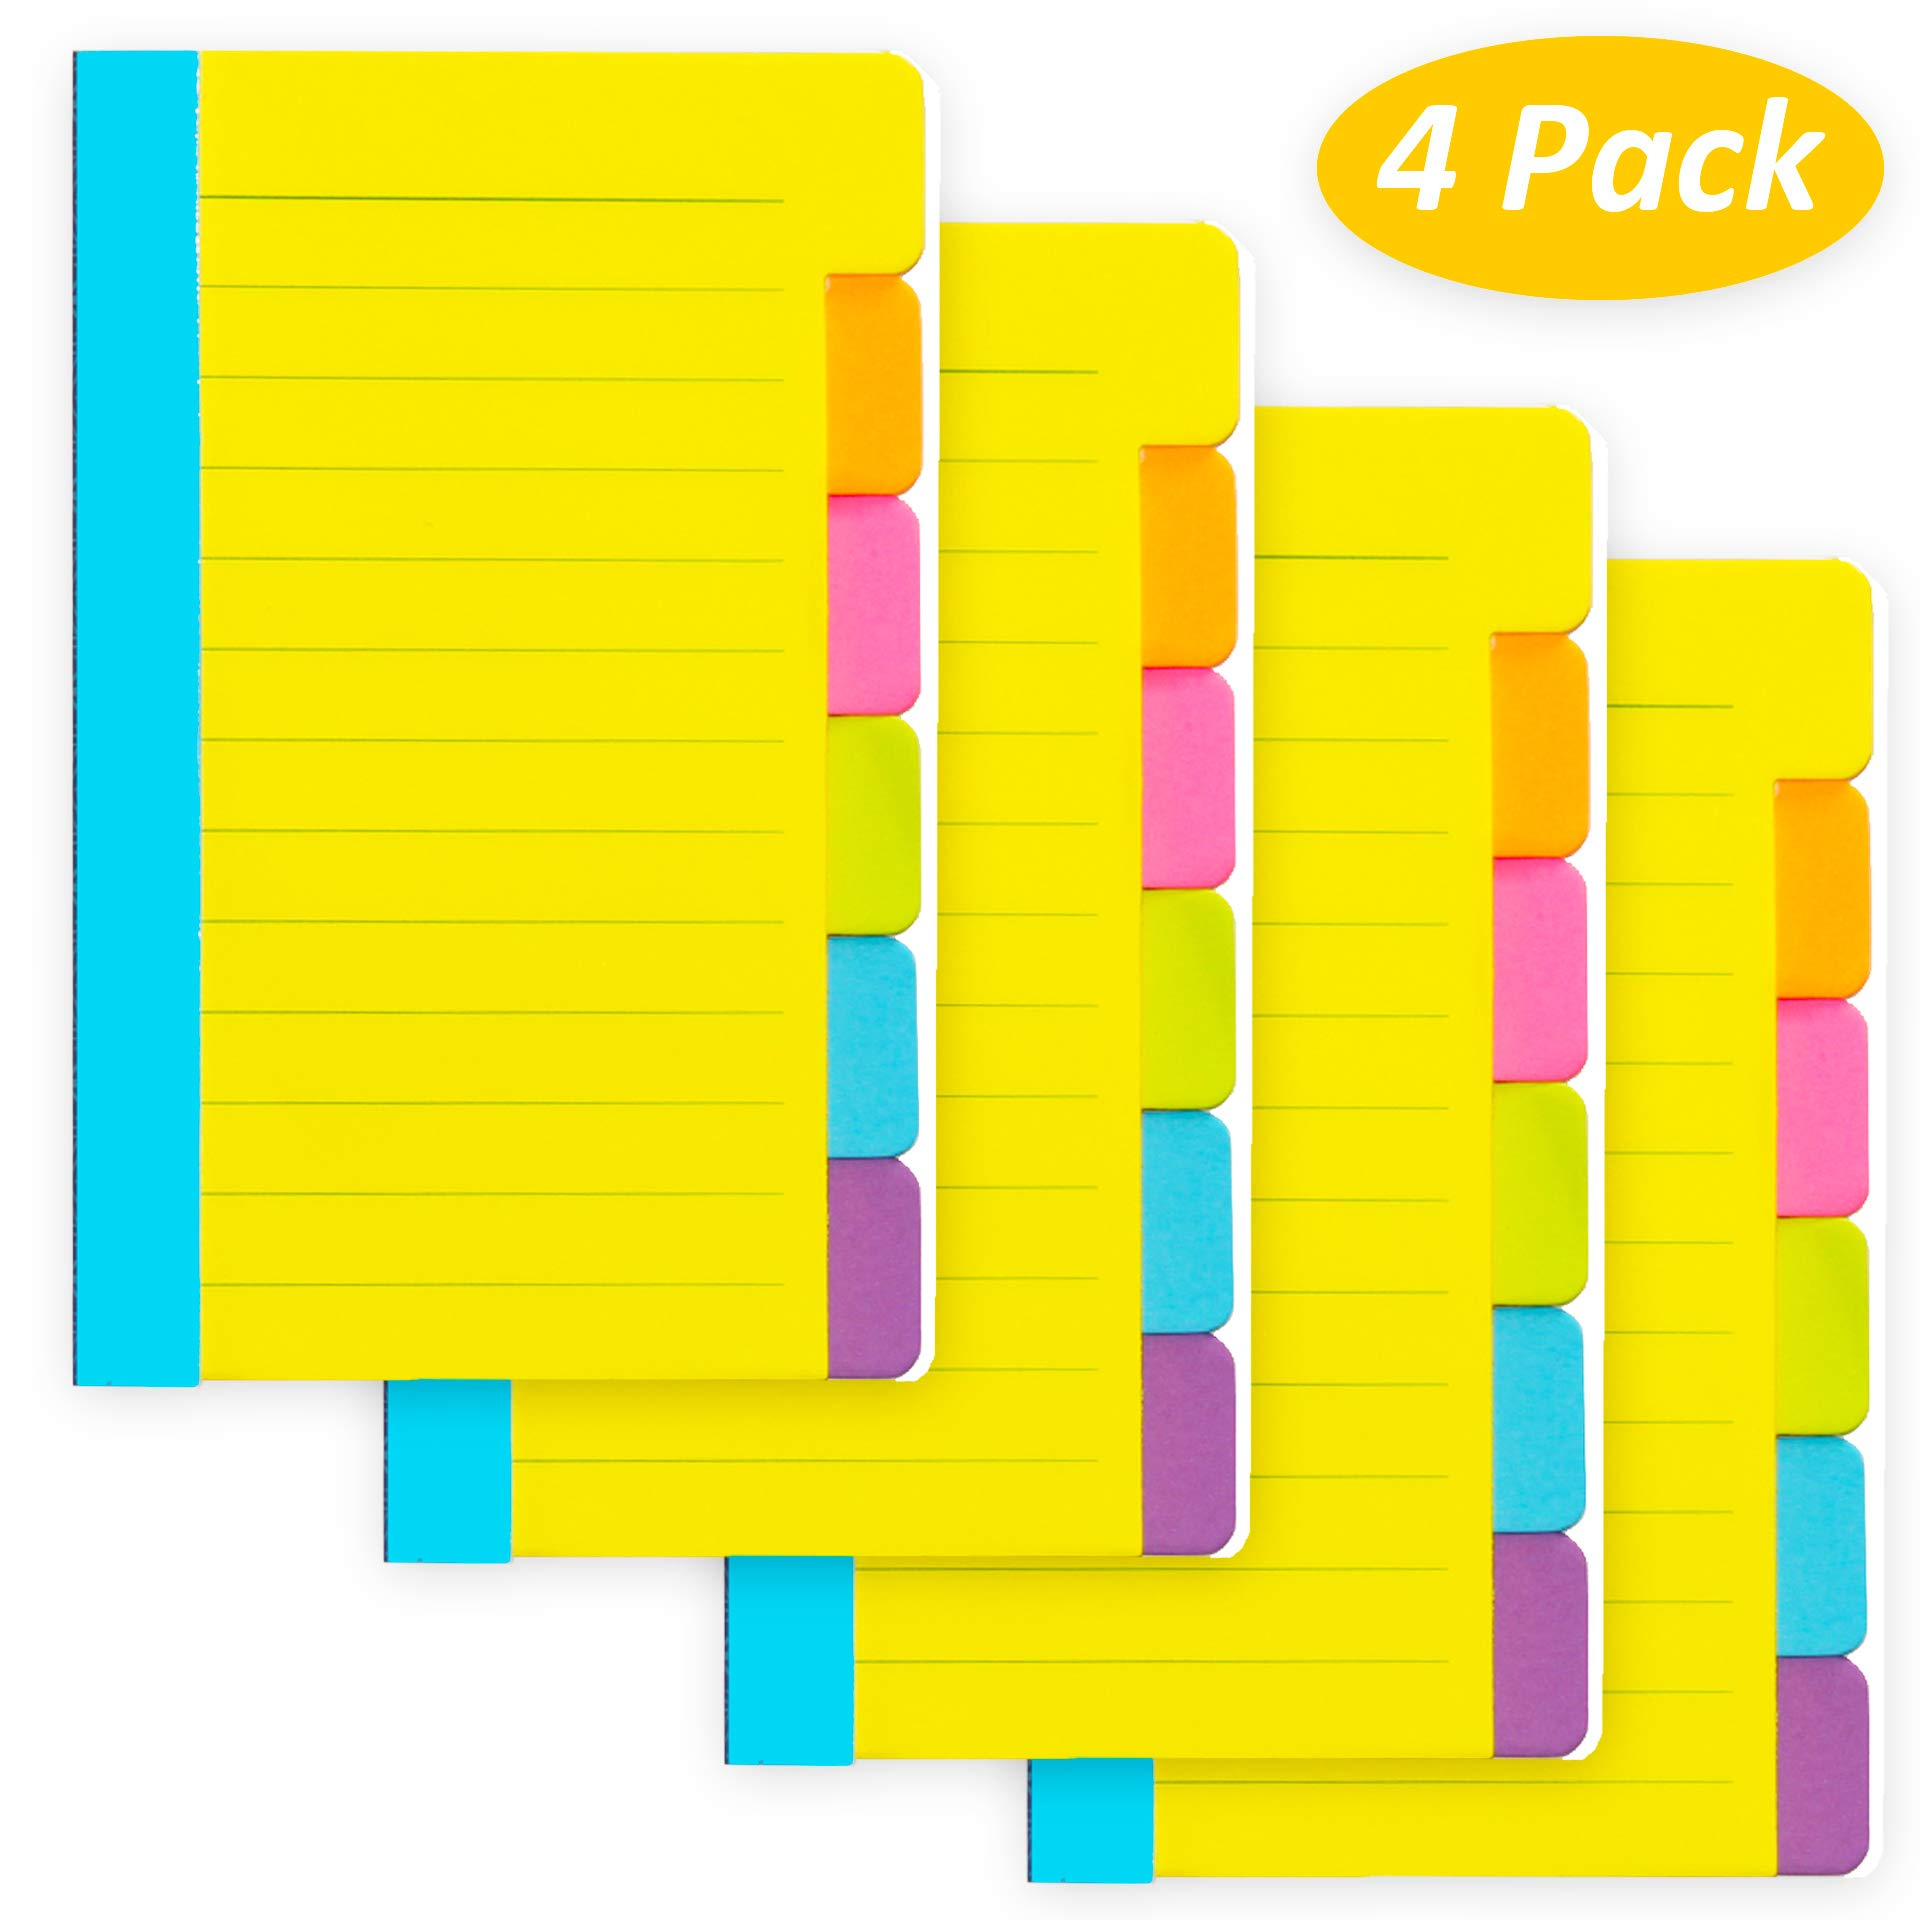 4 Pack Divider Sticky Notes, Total 360 Ruled Lined Notes,School & Office Supplies,Sticky Journals Page Tabs,4 x 6 inches,Assorted Neon Colors